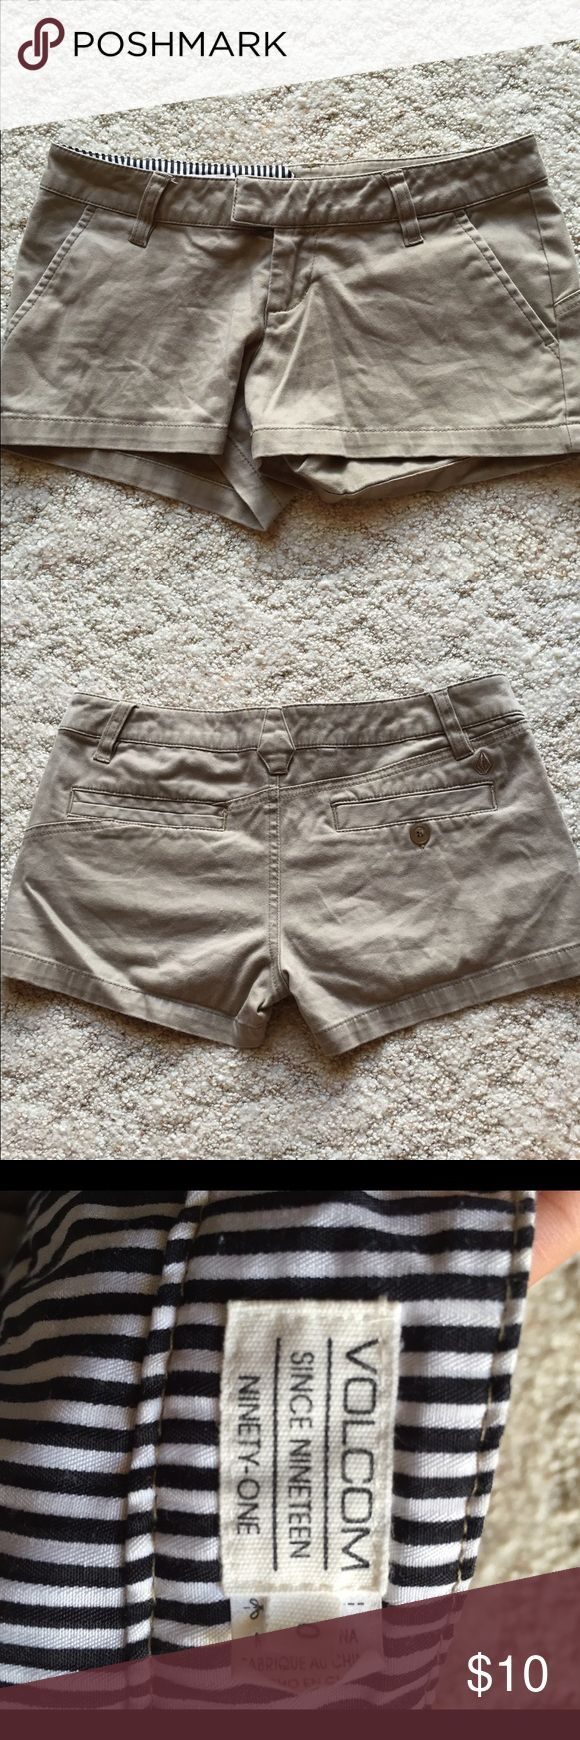 Volcom Women's Khaki Shorts Worn a few times, but still in pretty good condition. Size 0. Short but cute! Volcom Shorts